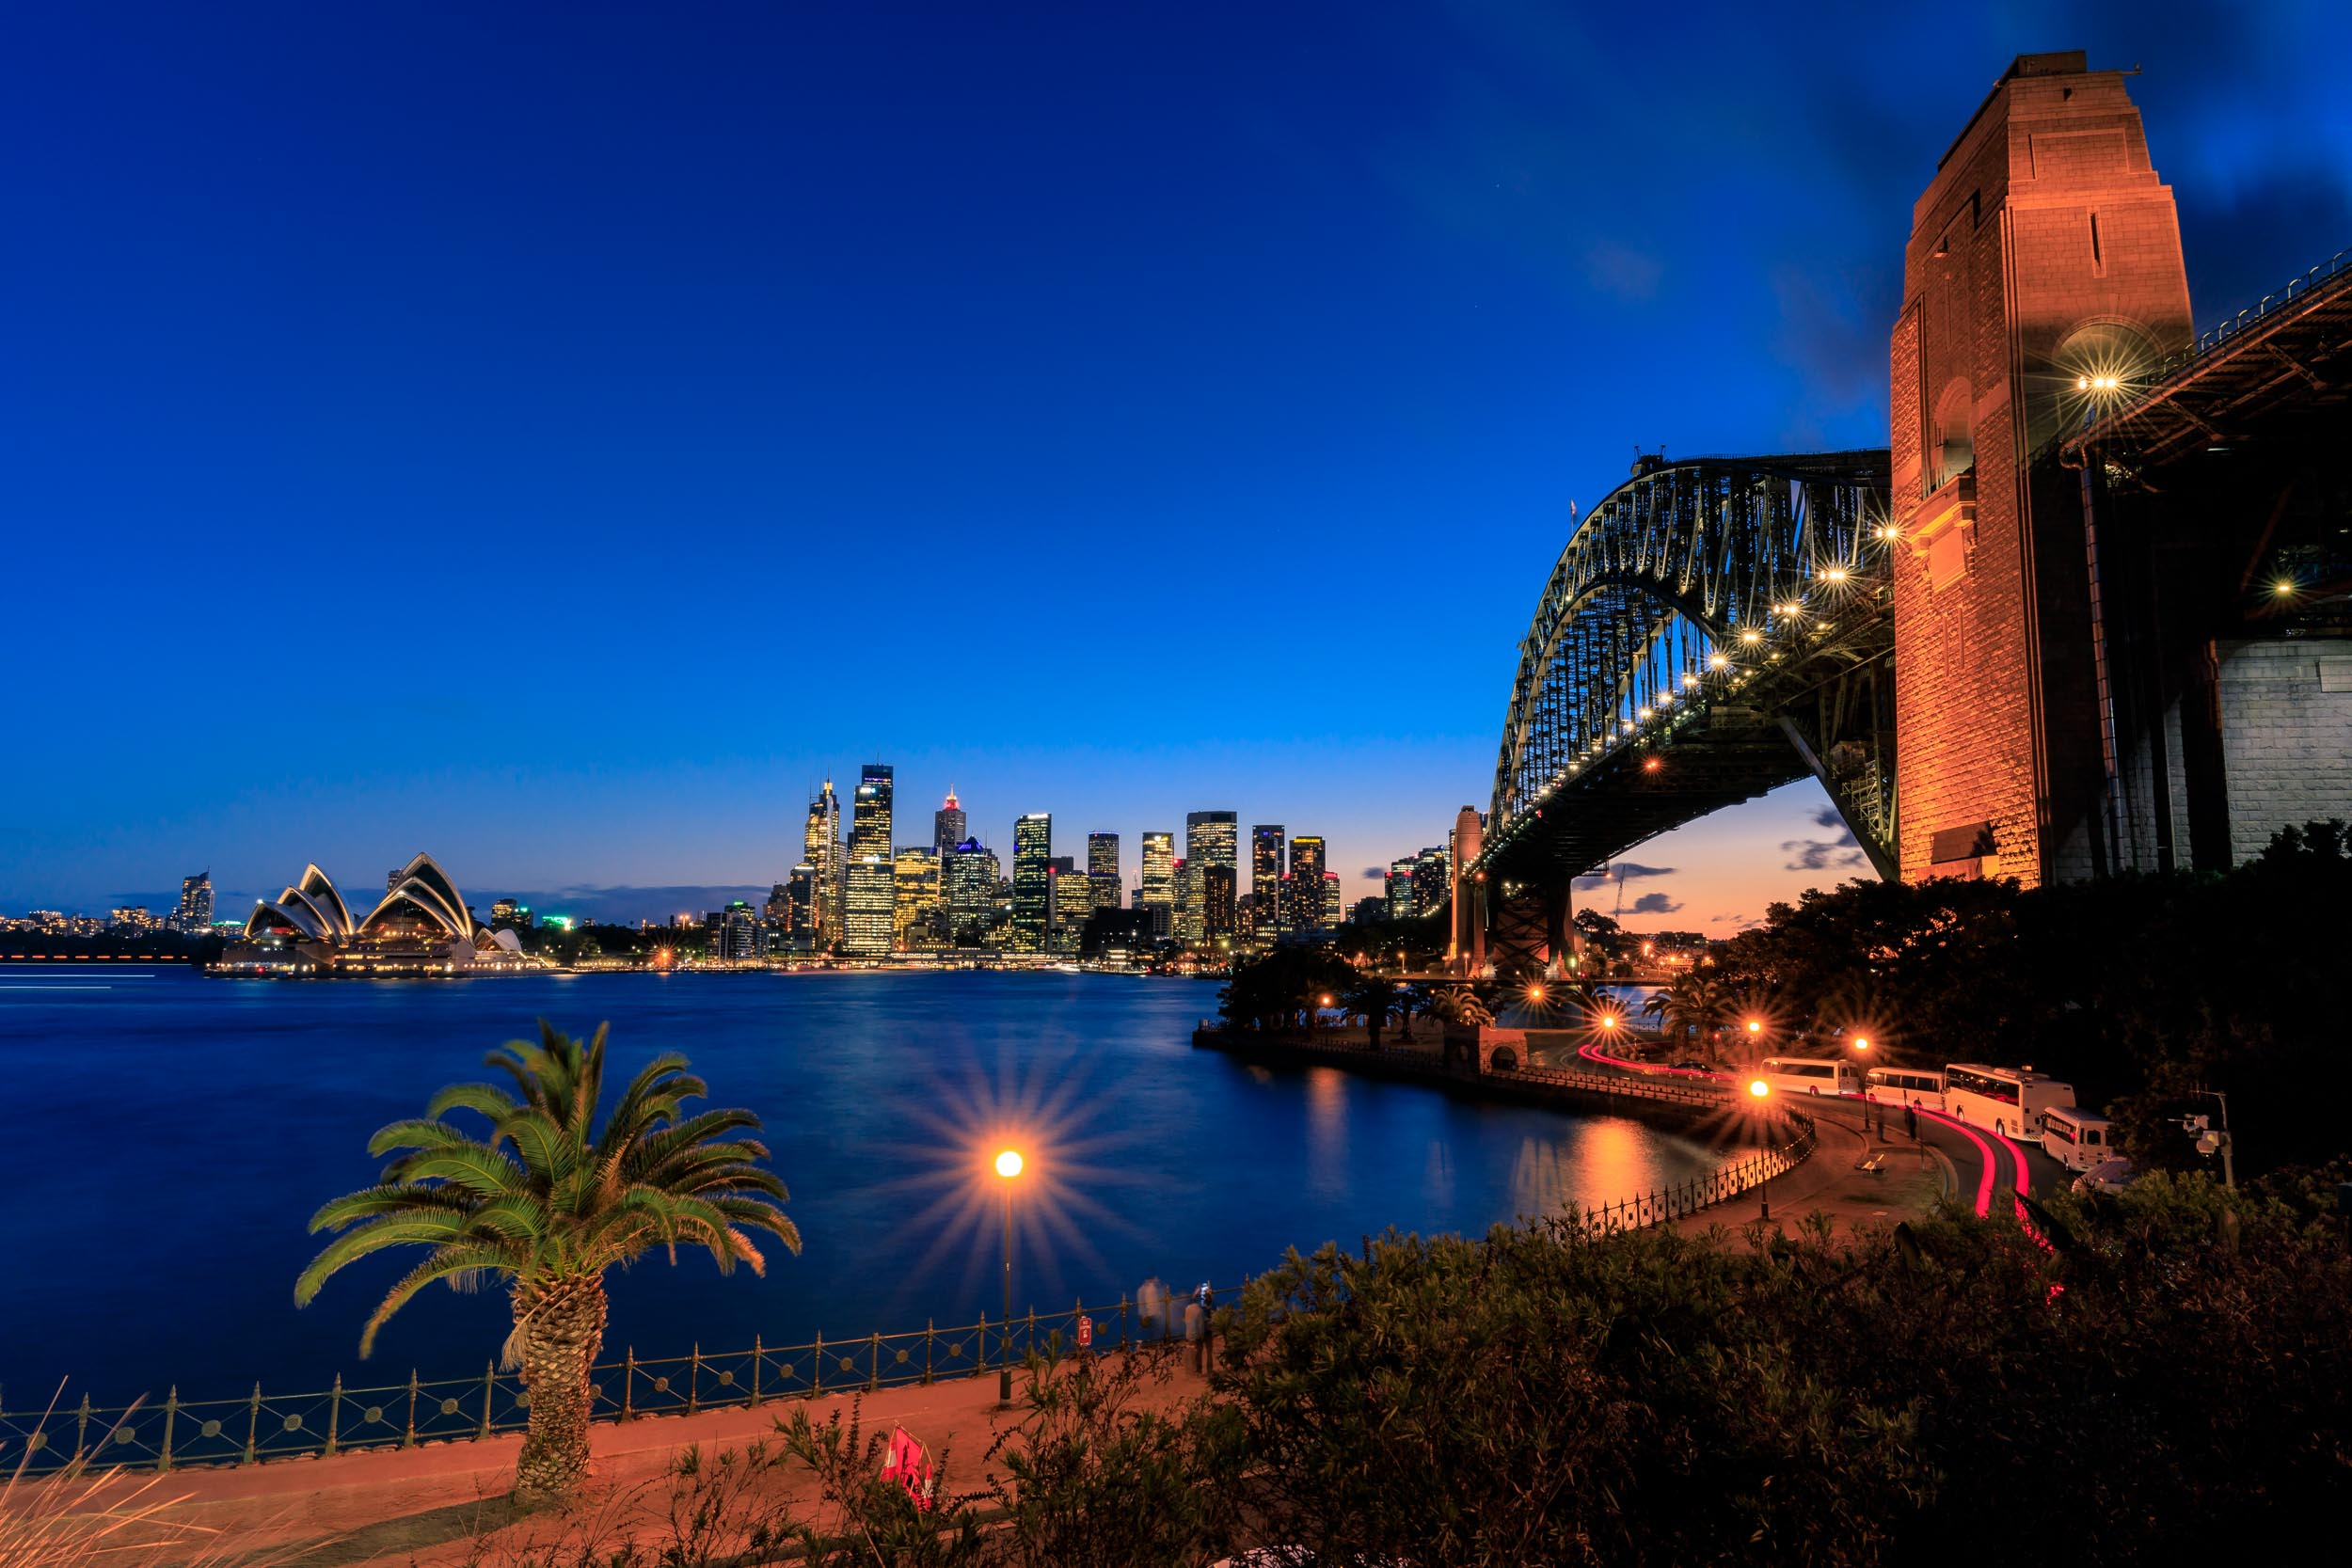 Best views of the Sydney Harbour Bridge - Kiribilli